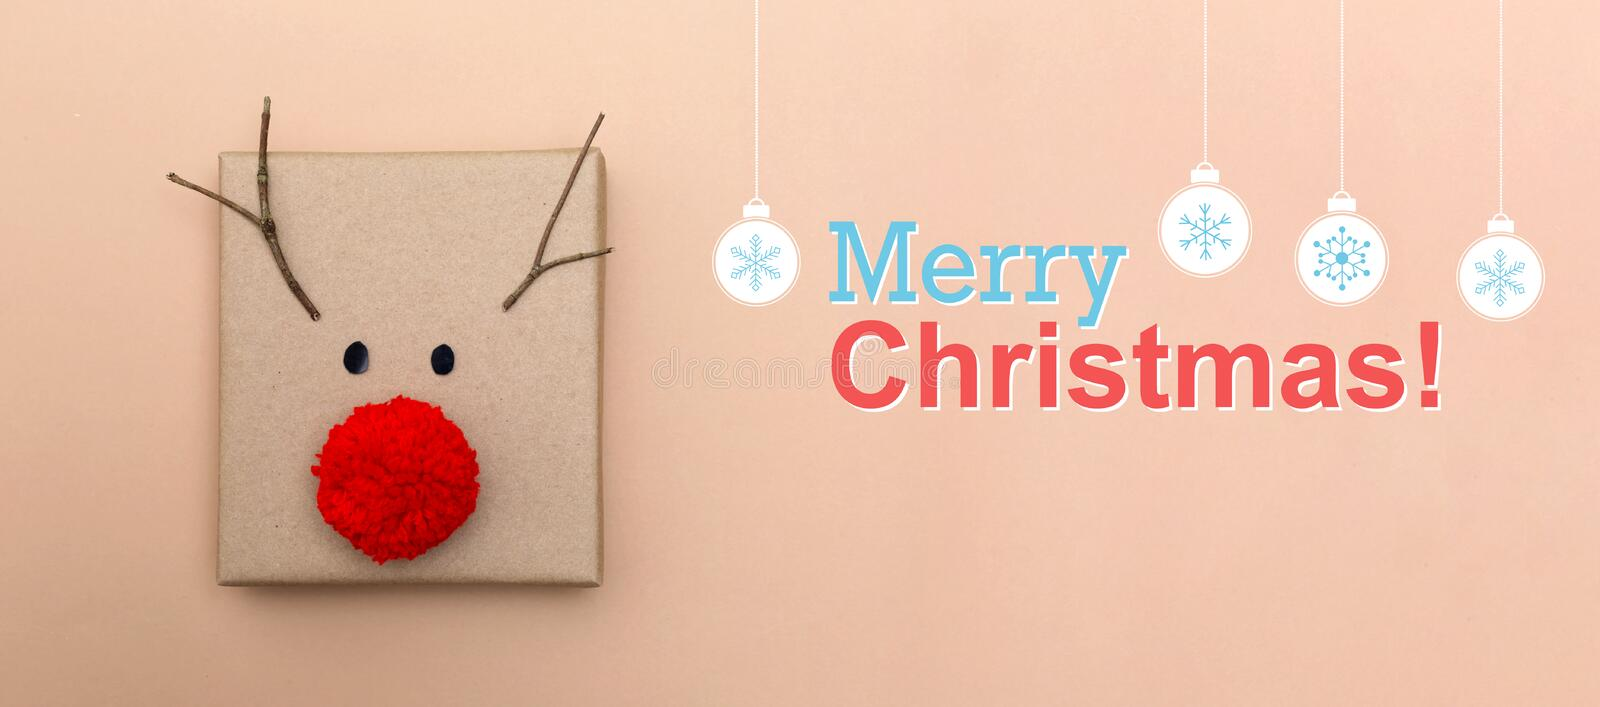 Merry christmas message with a reindeer gift box stock photo